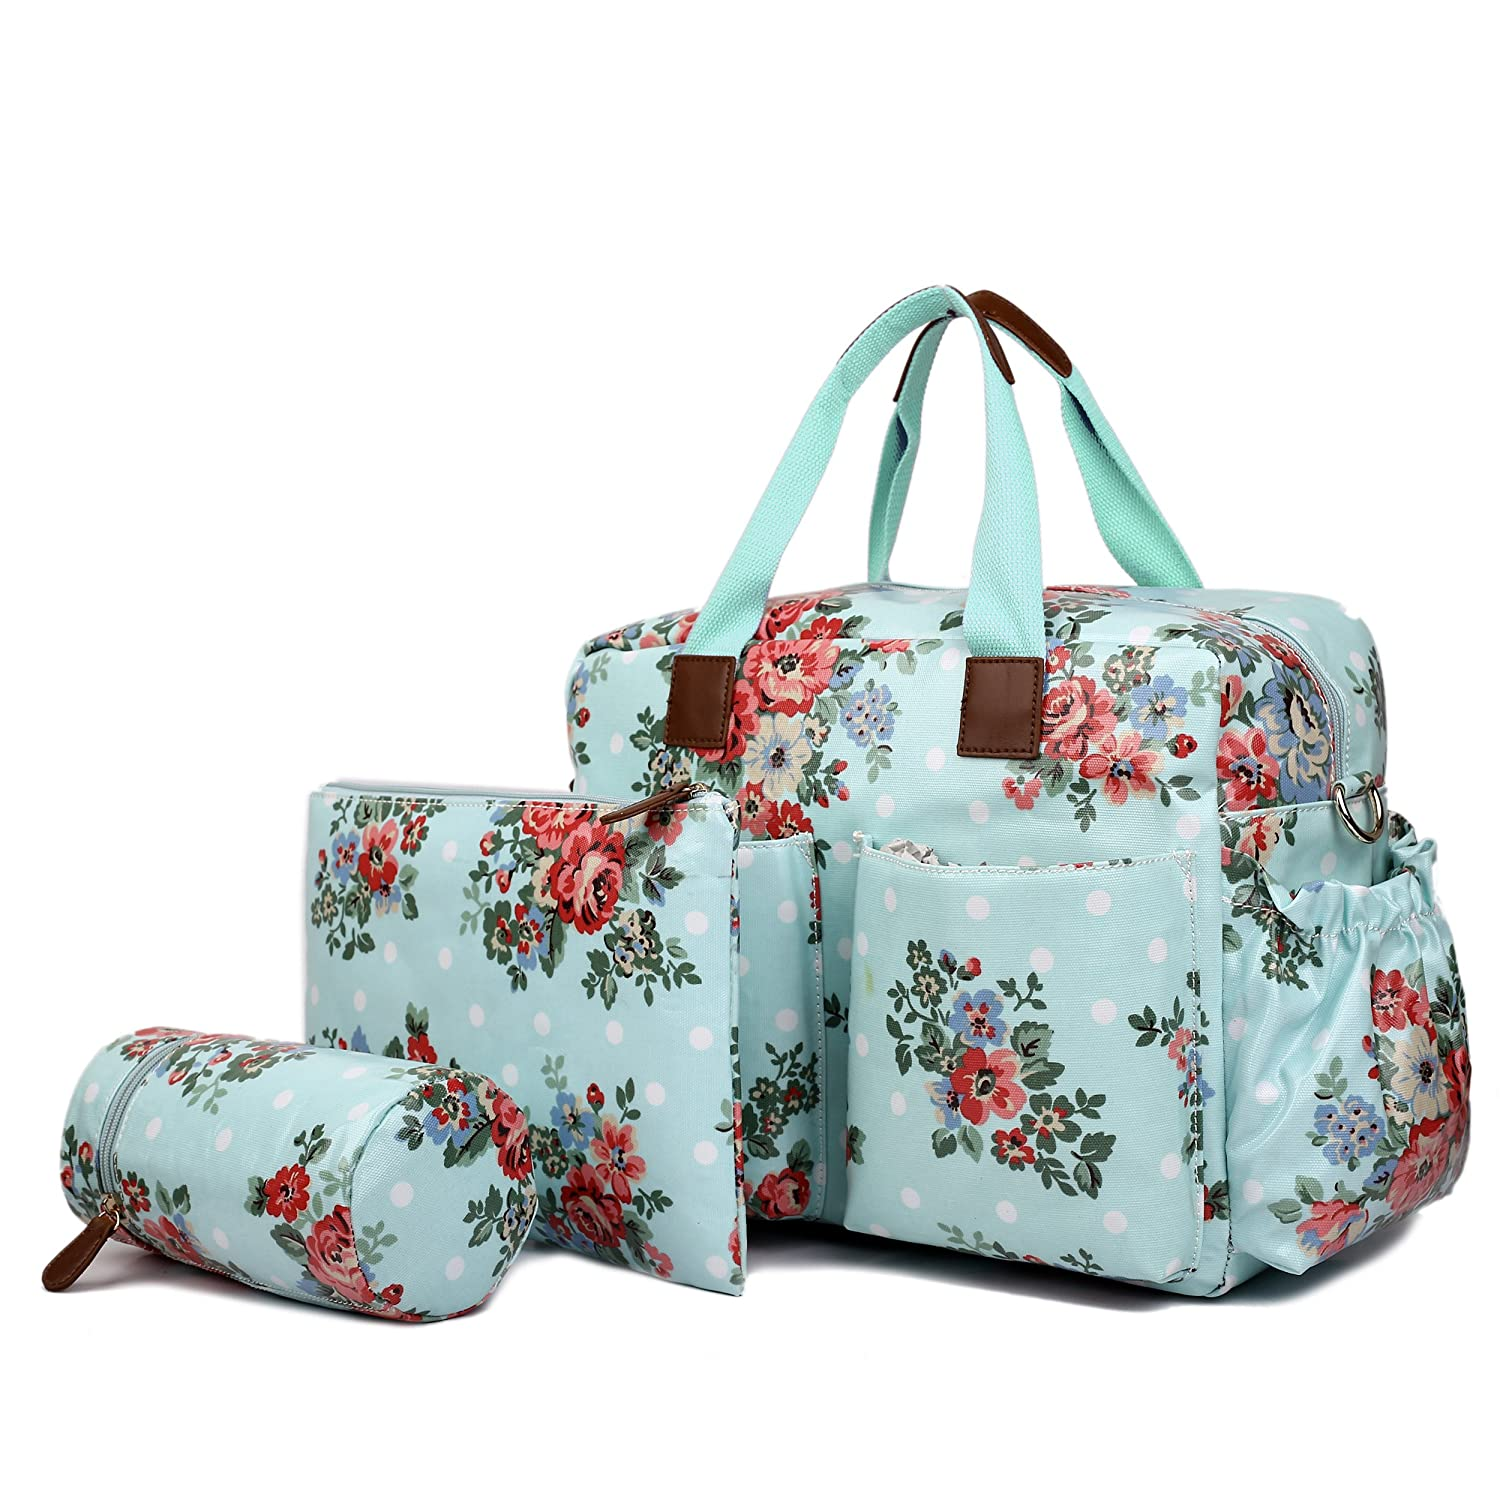 Miss Lulu Baby Changing Bag Set Mummy Nappy Large Tote Clean